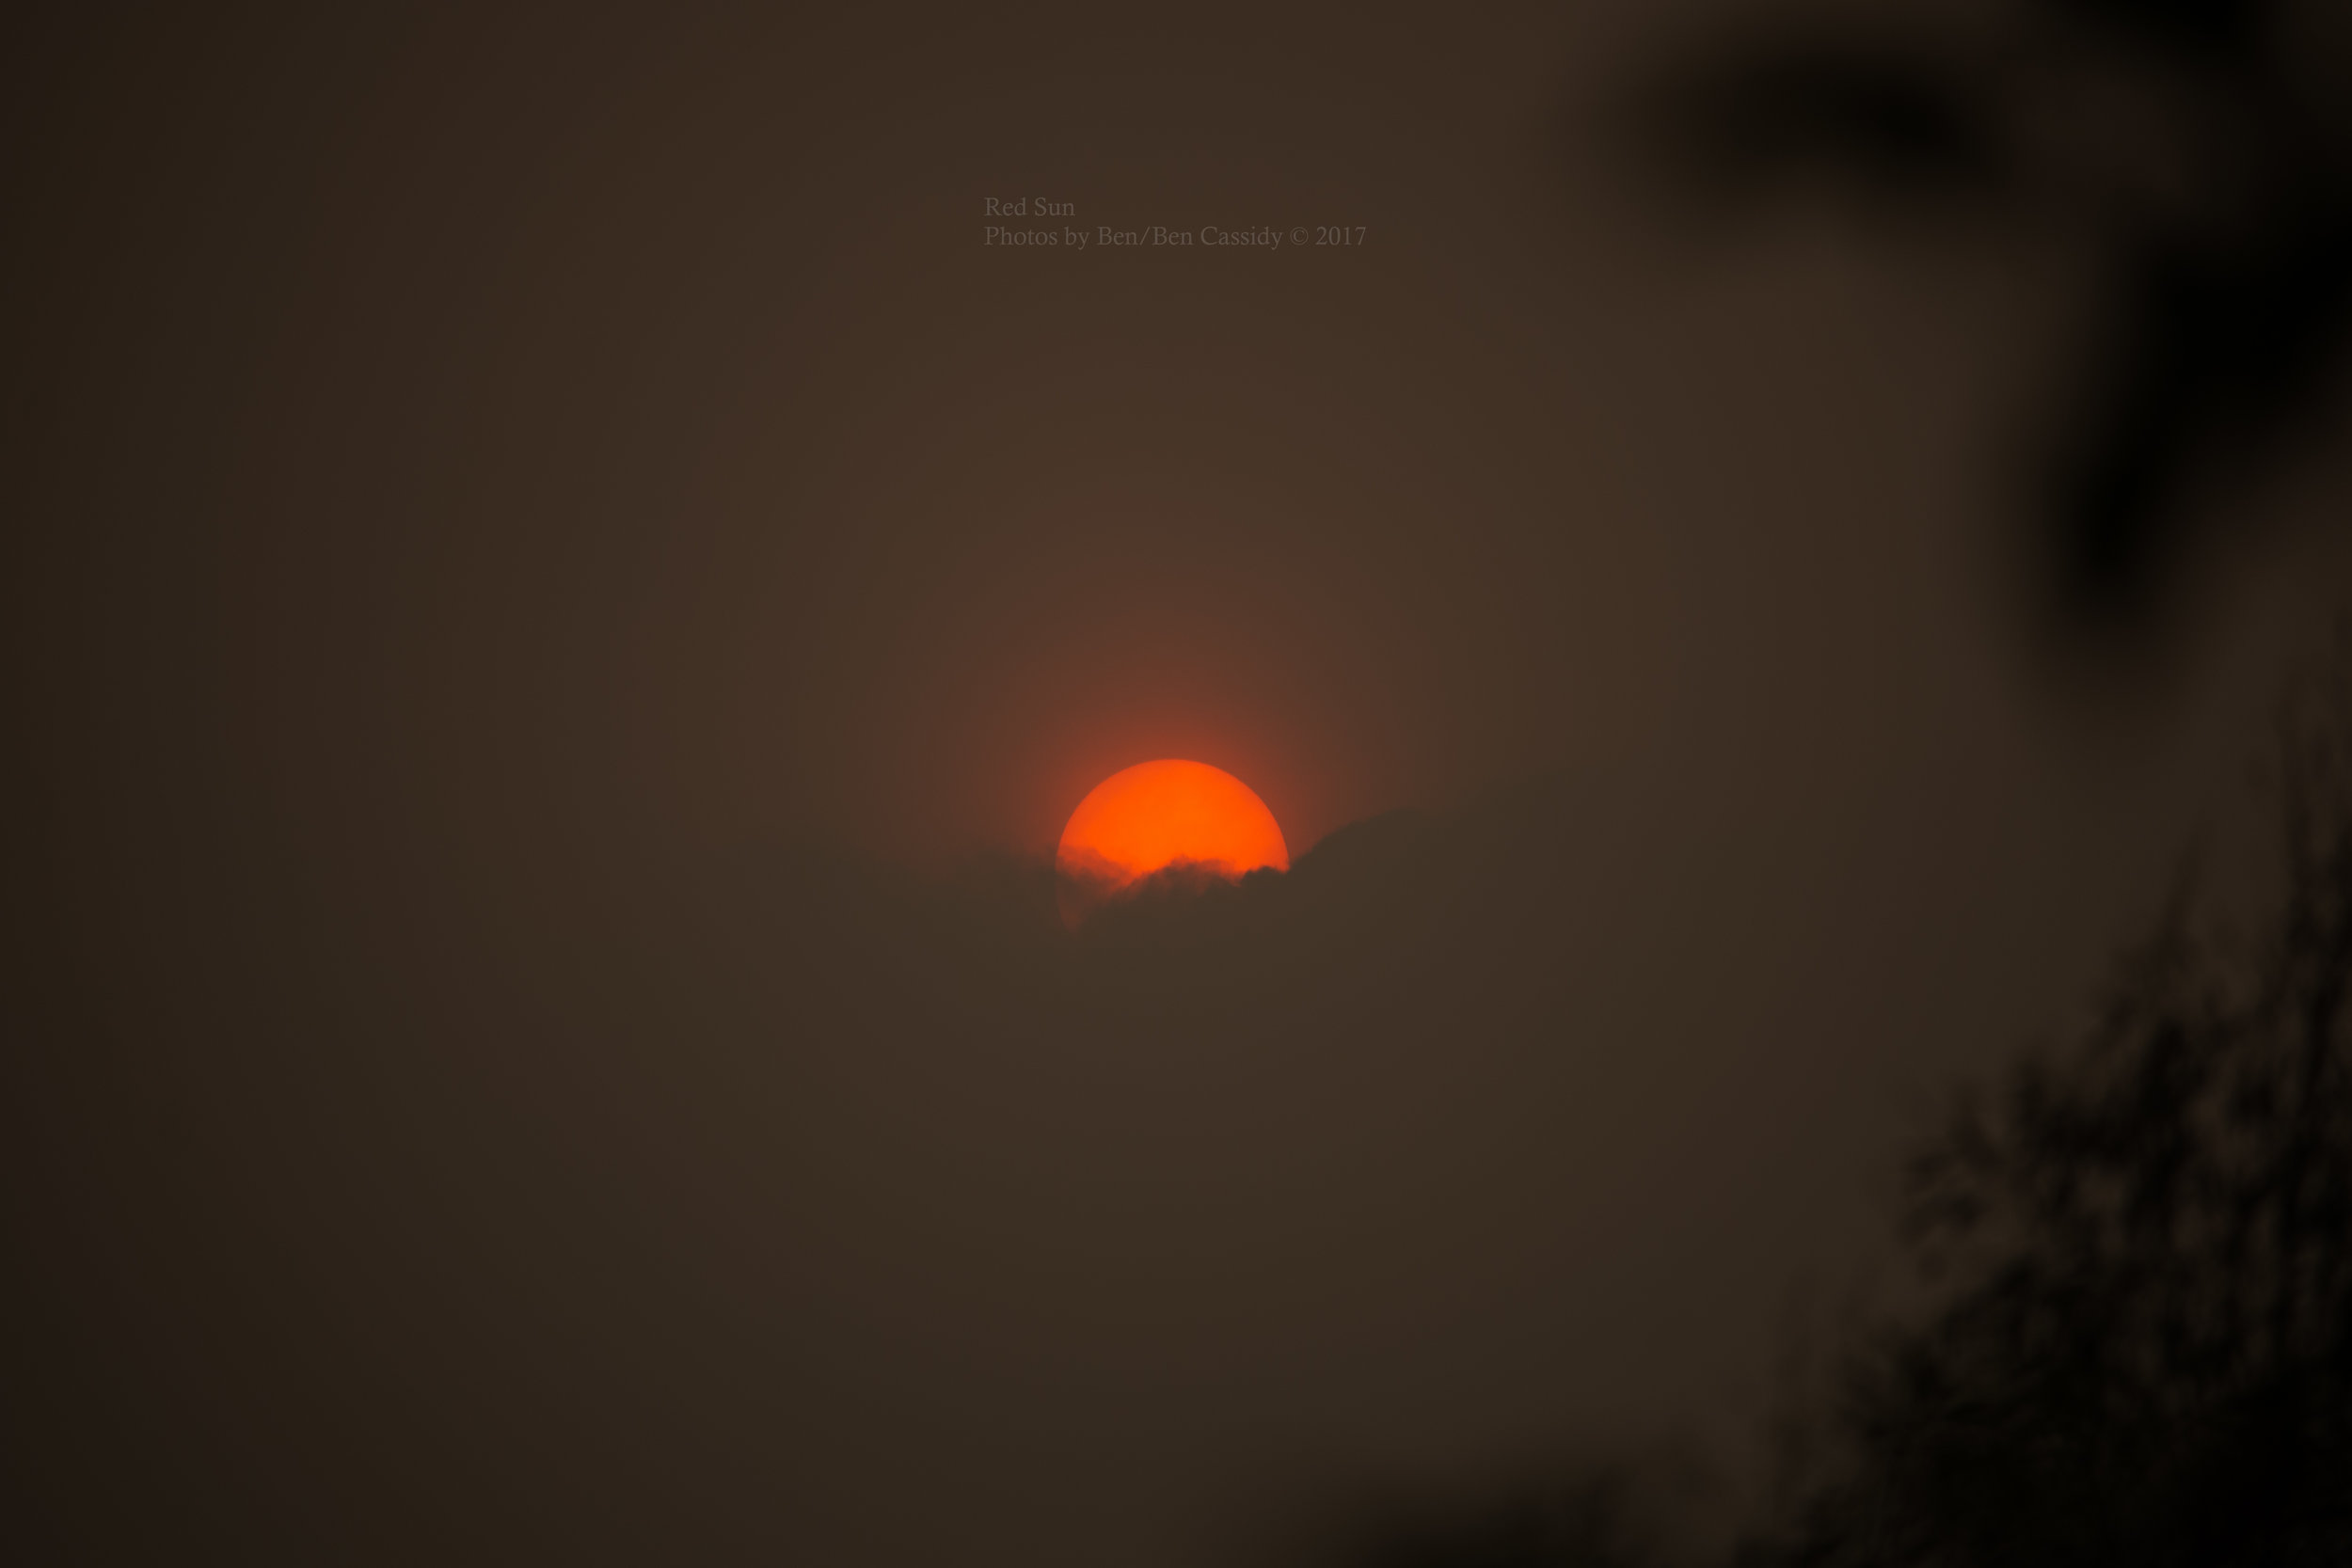 Red Sun 3, Crewe, Cheshire, UK.